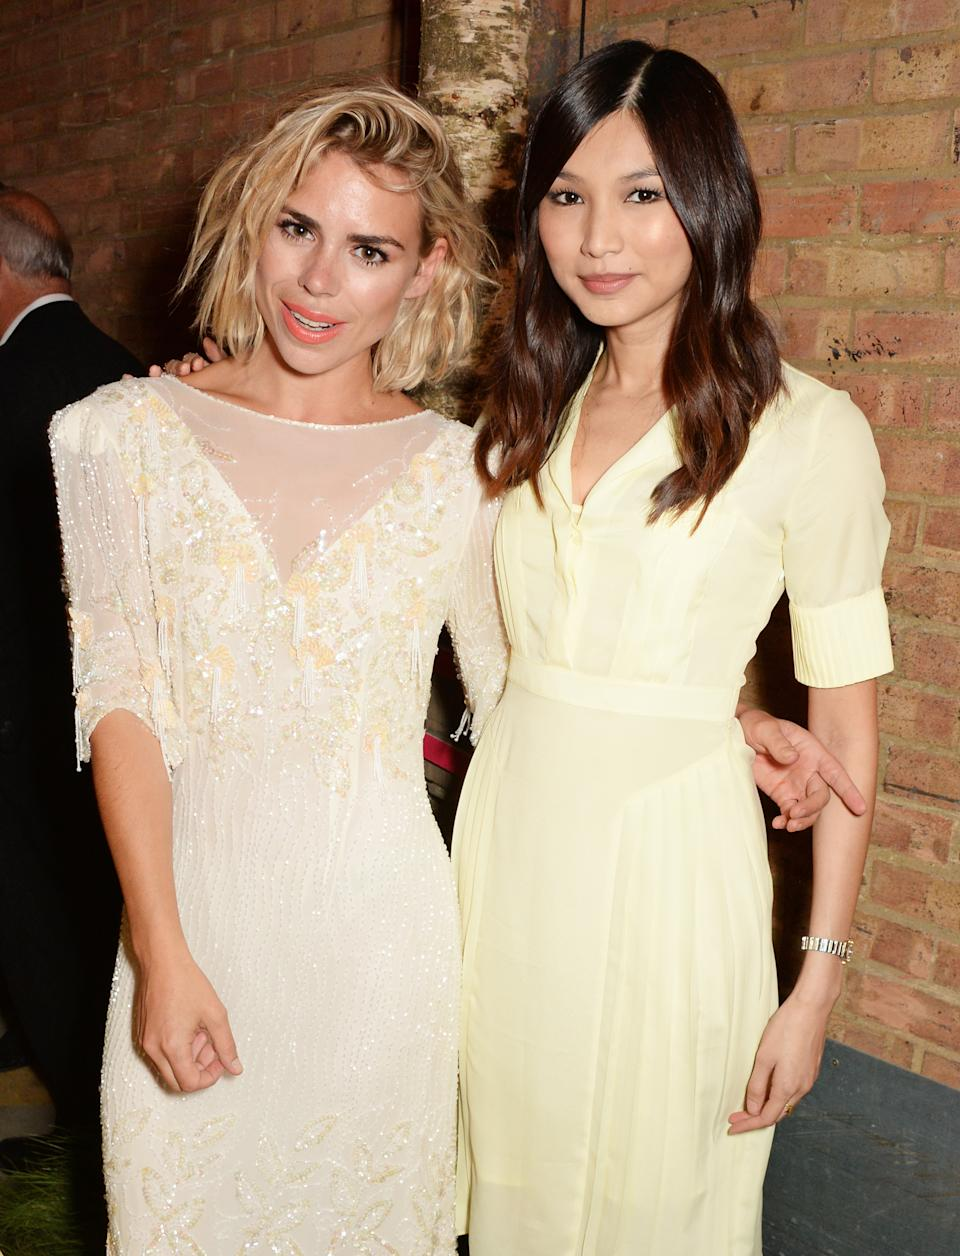 LONDON, ENGLAND - SEPTEMBER 18: Billie Piper (L) and Gemma Chan attend the Bright Young Things Gala 2014, a Young Patrons of the National Theatre gala event in support of emerging artists, at The National Theatre on September 18, 2014 in London, England. (Photo by David M. Benett/Getty Images)